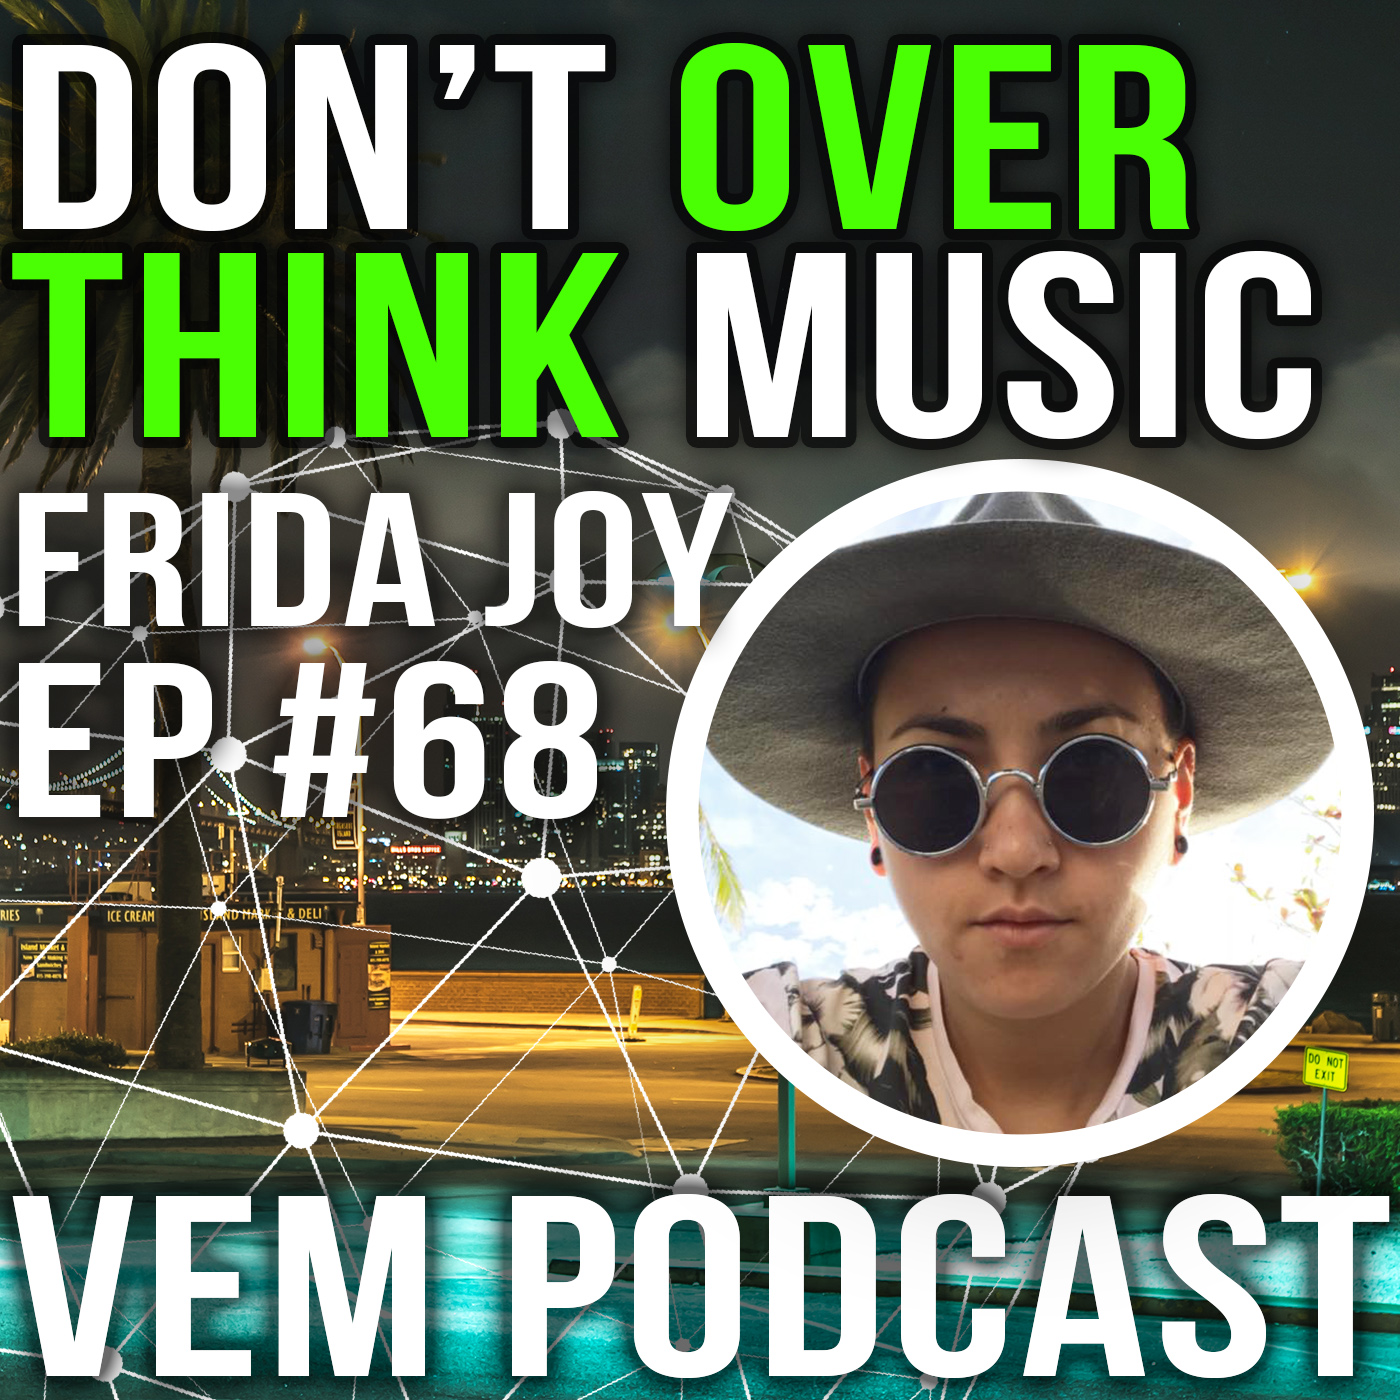 Voice of Electronic Music #68 - Don't Over Think Music - Frida Joy (DMT LBL)